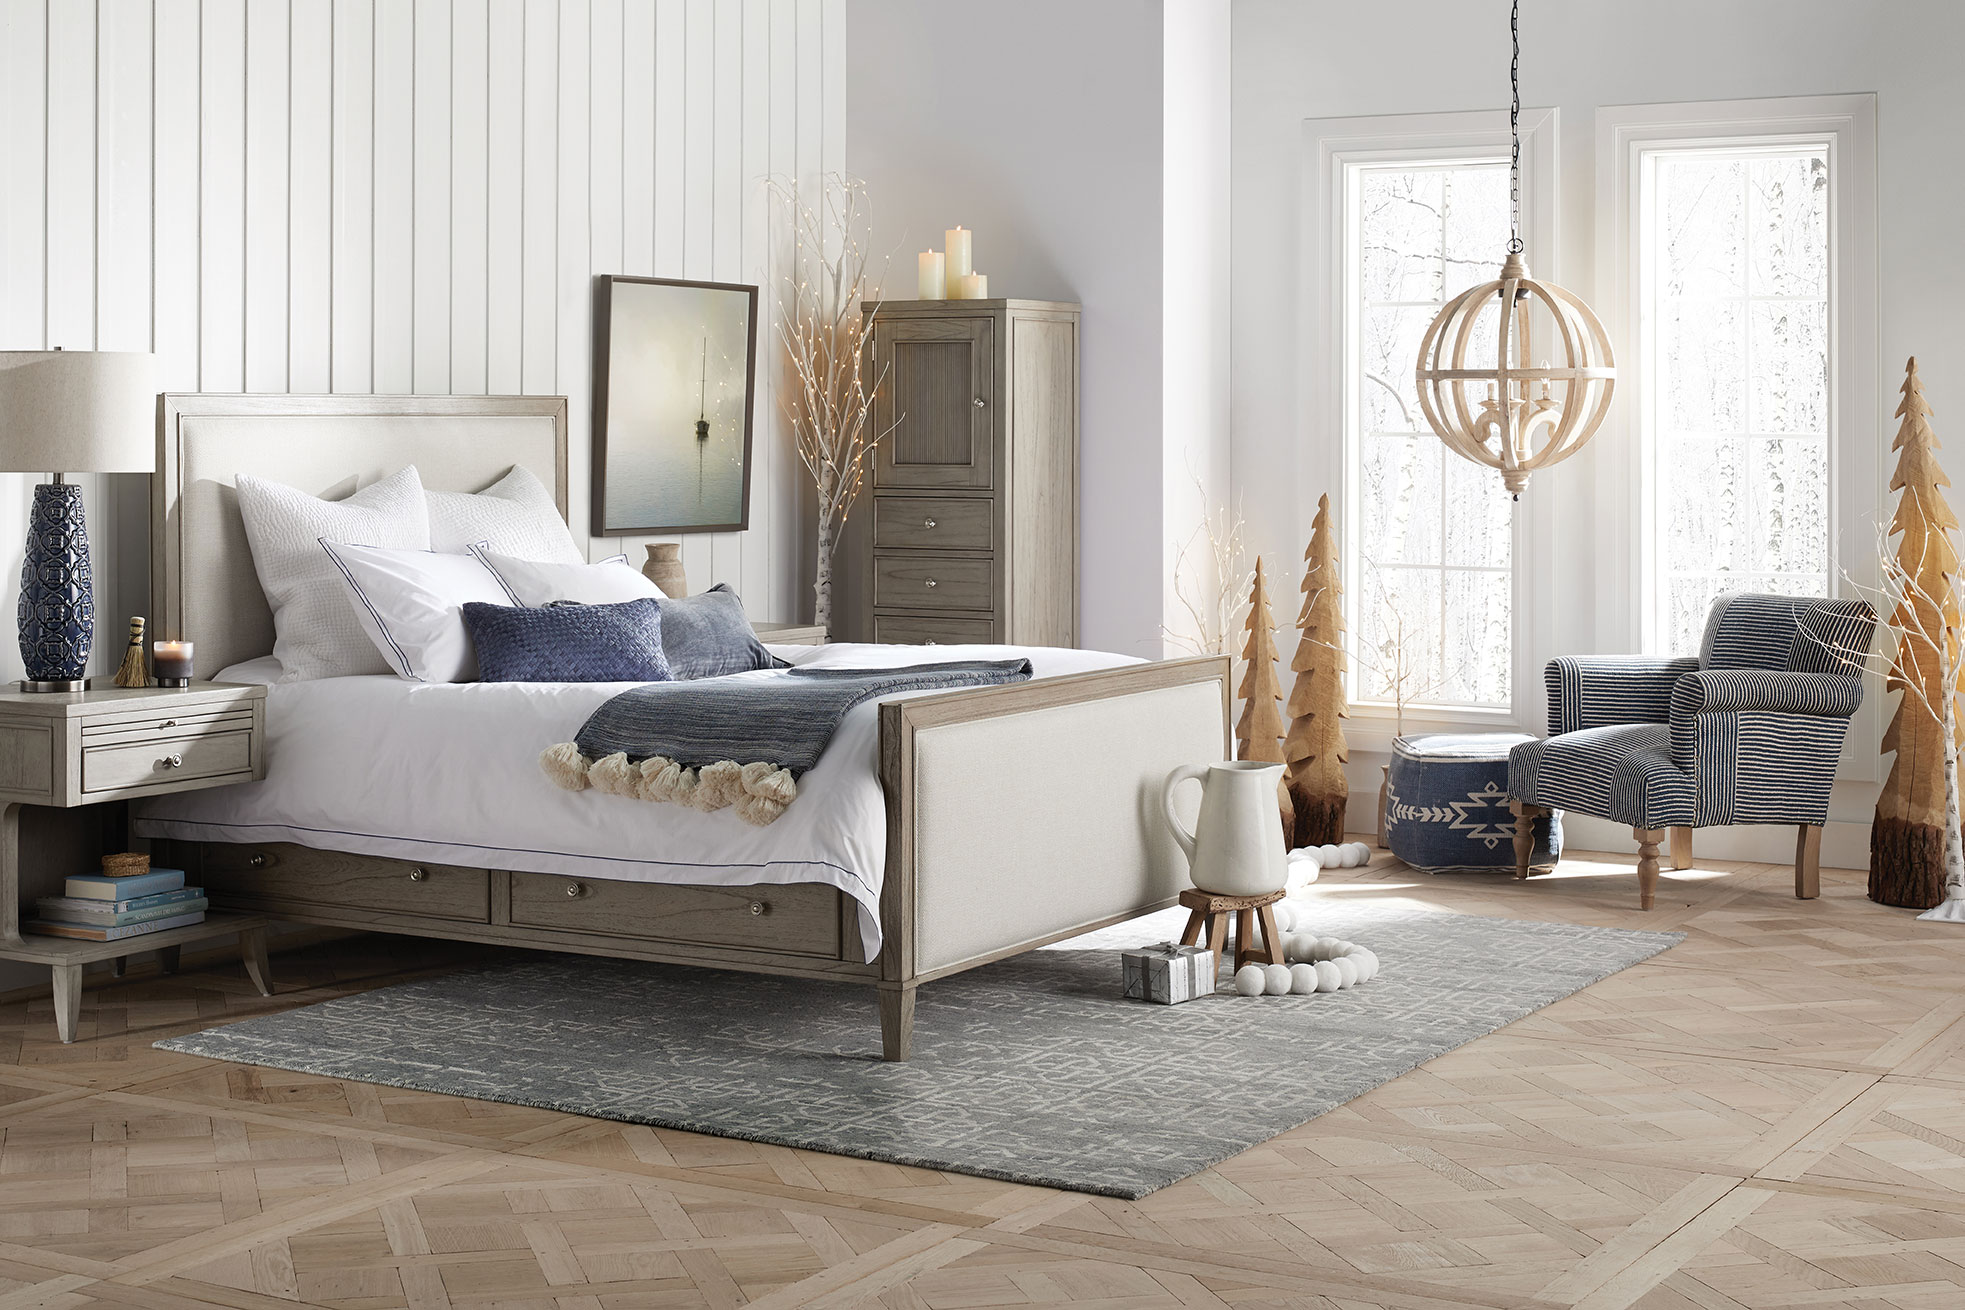 arhaus bed white walls